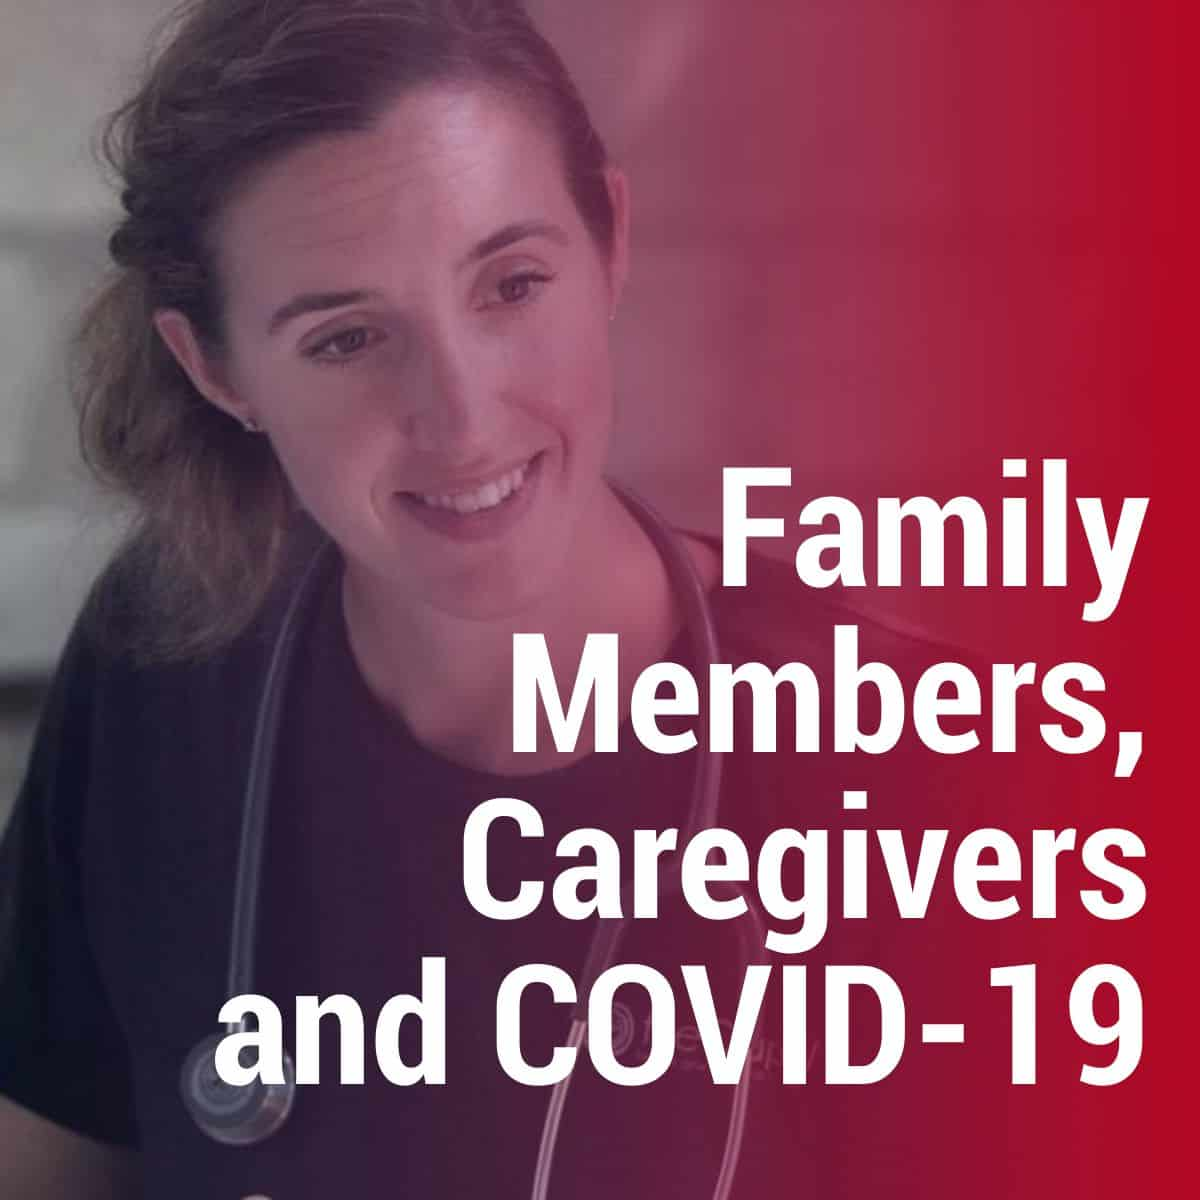 Family Members, Caregivers and COVID-19